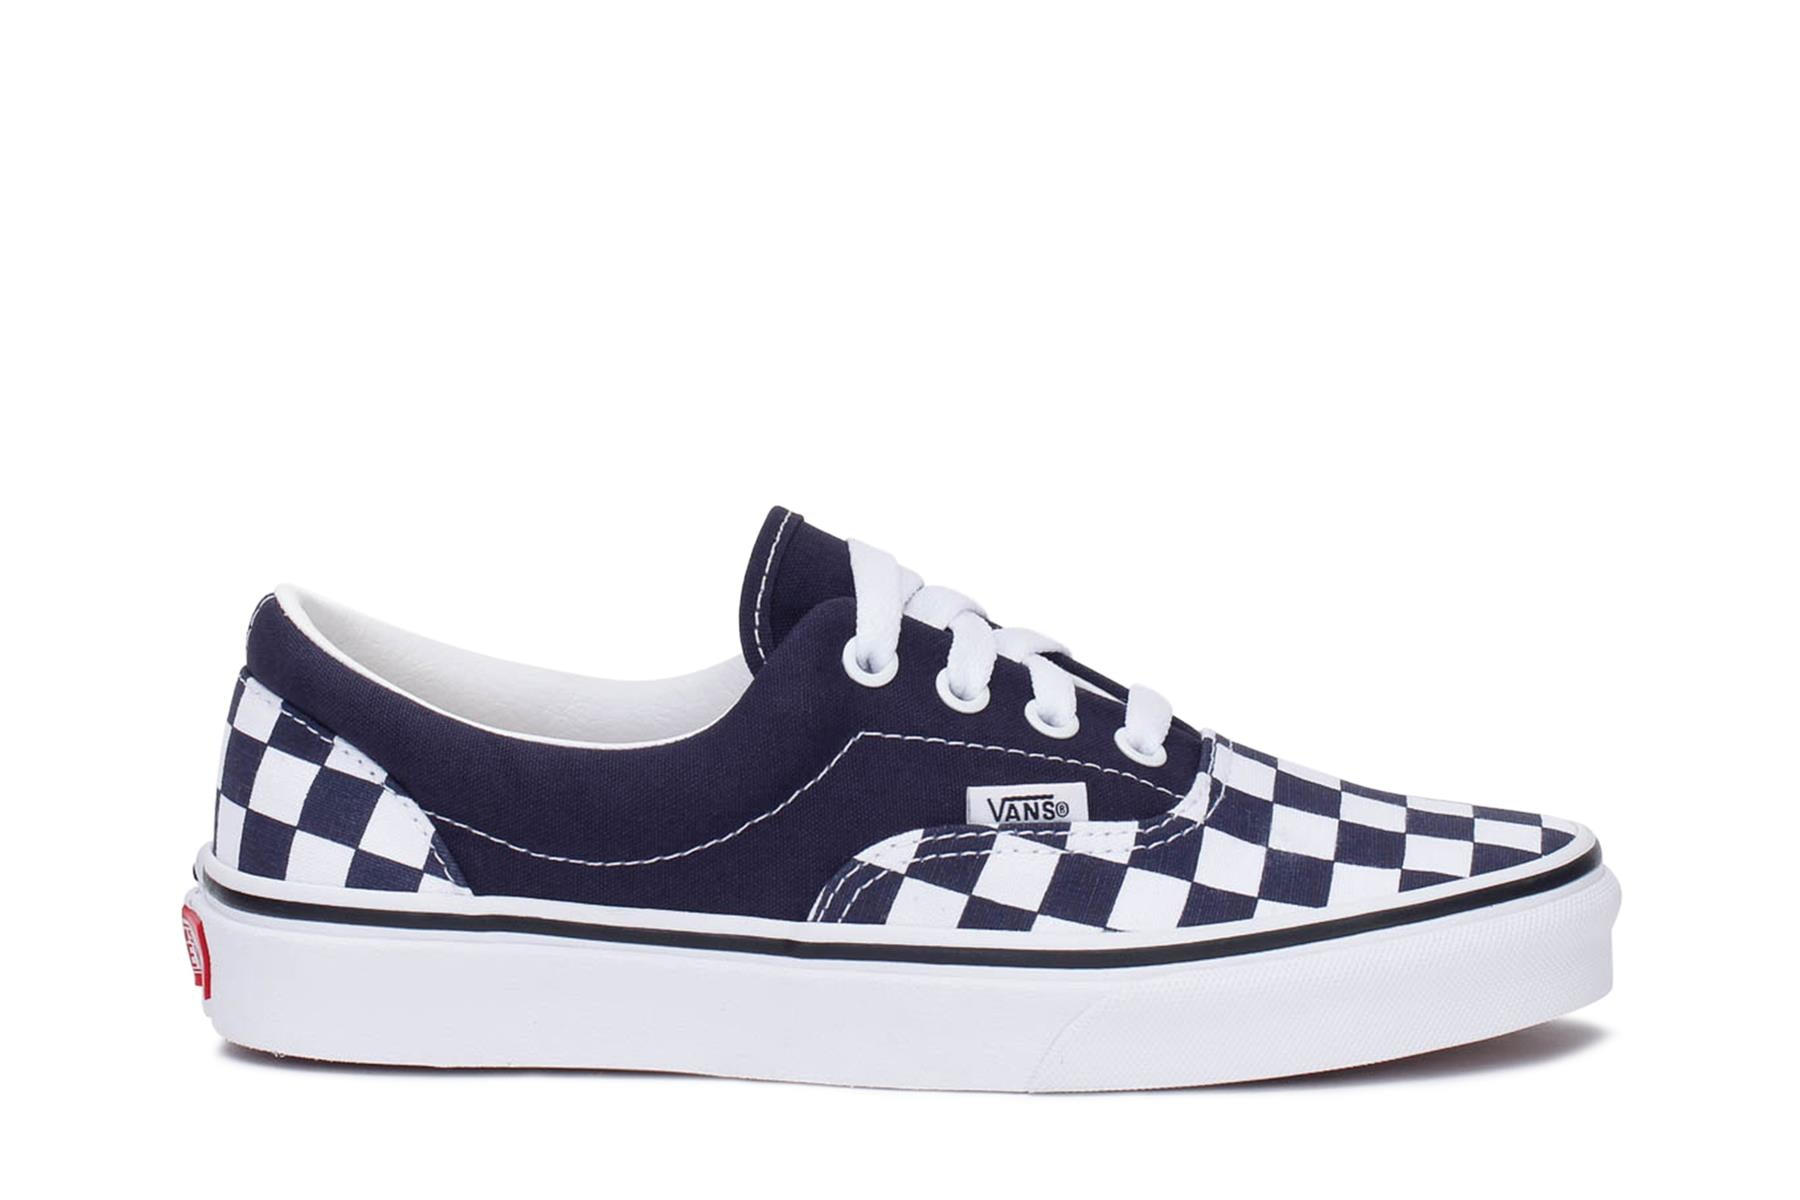 vans-mens-sneakers-era-checkerboard-night-sky-true-white-vn0a4bv4vxj-main